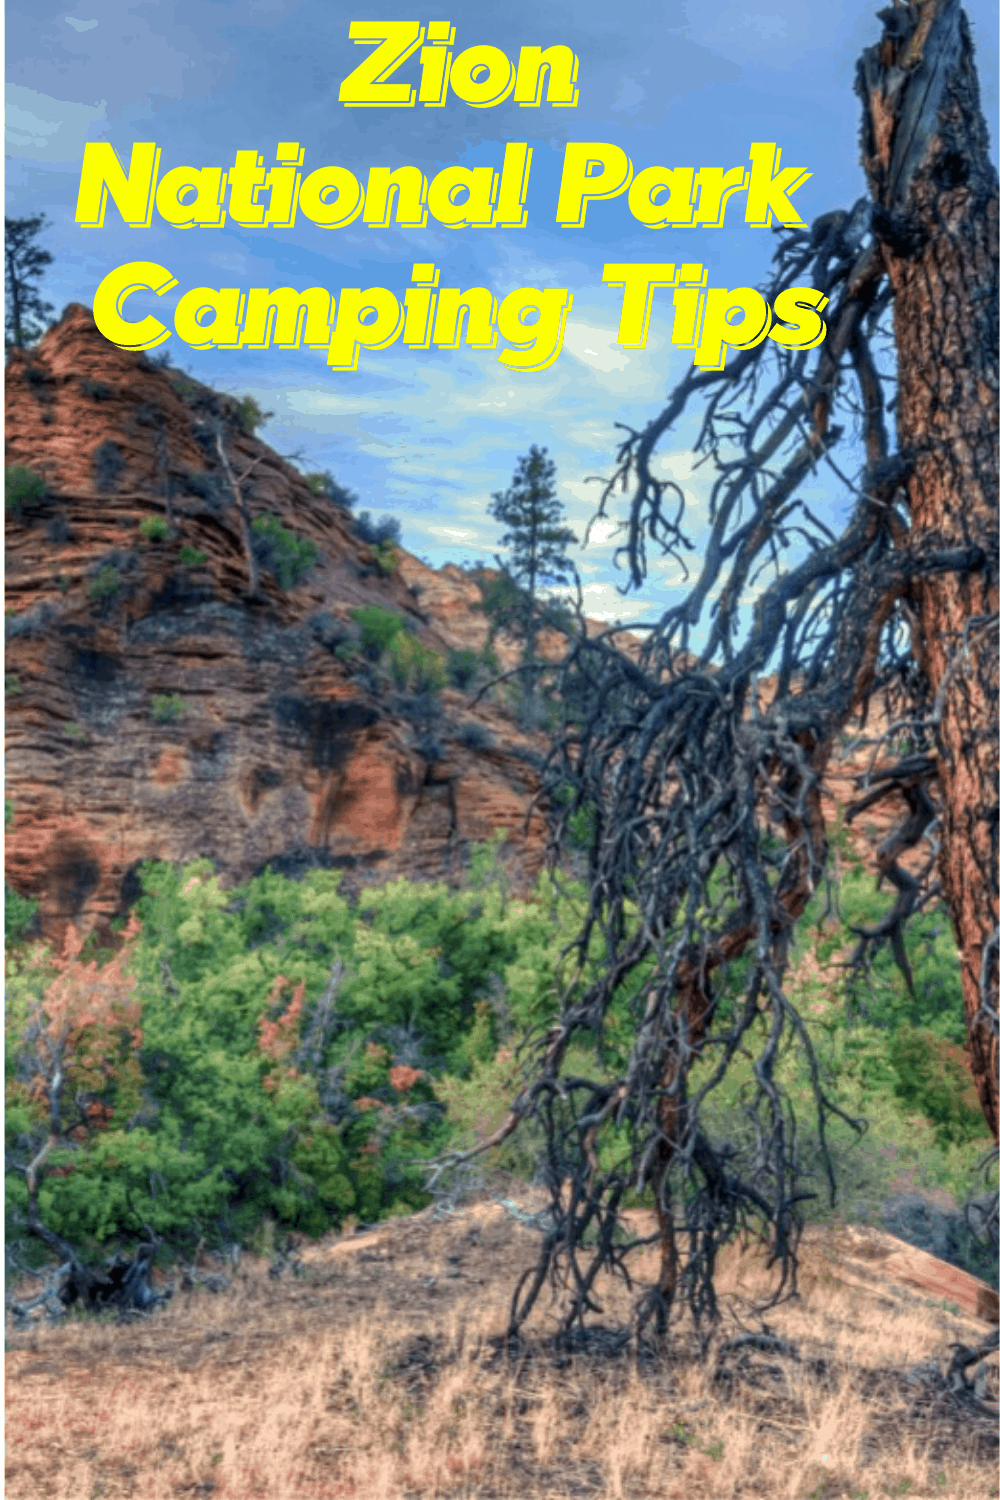 Zion National Park Camping Tips